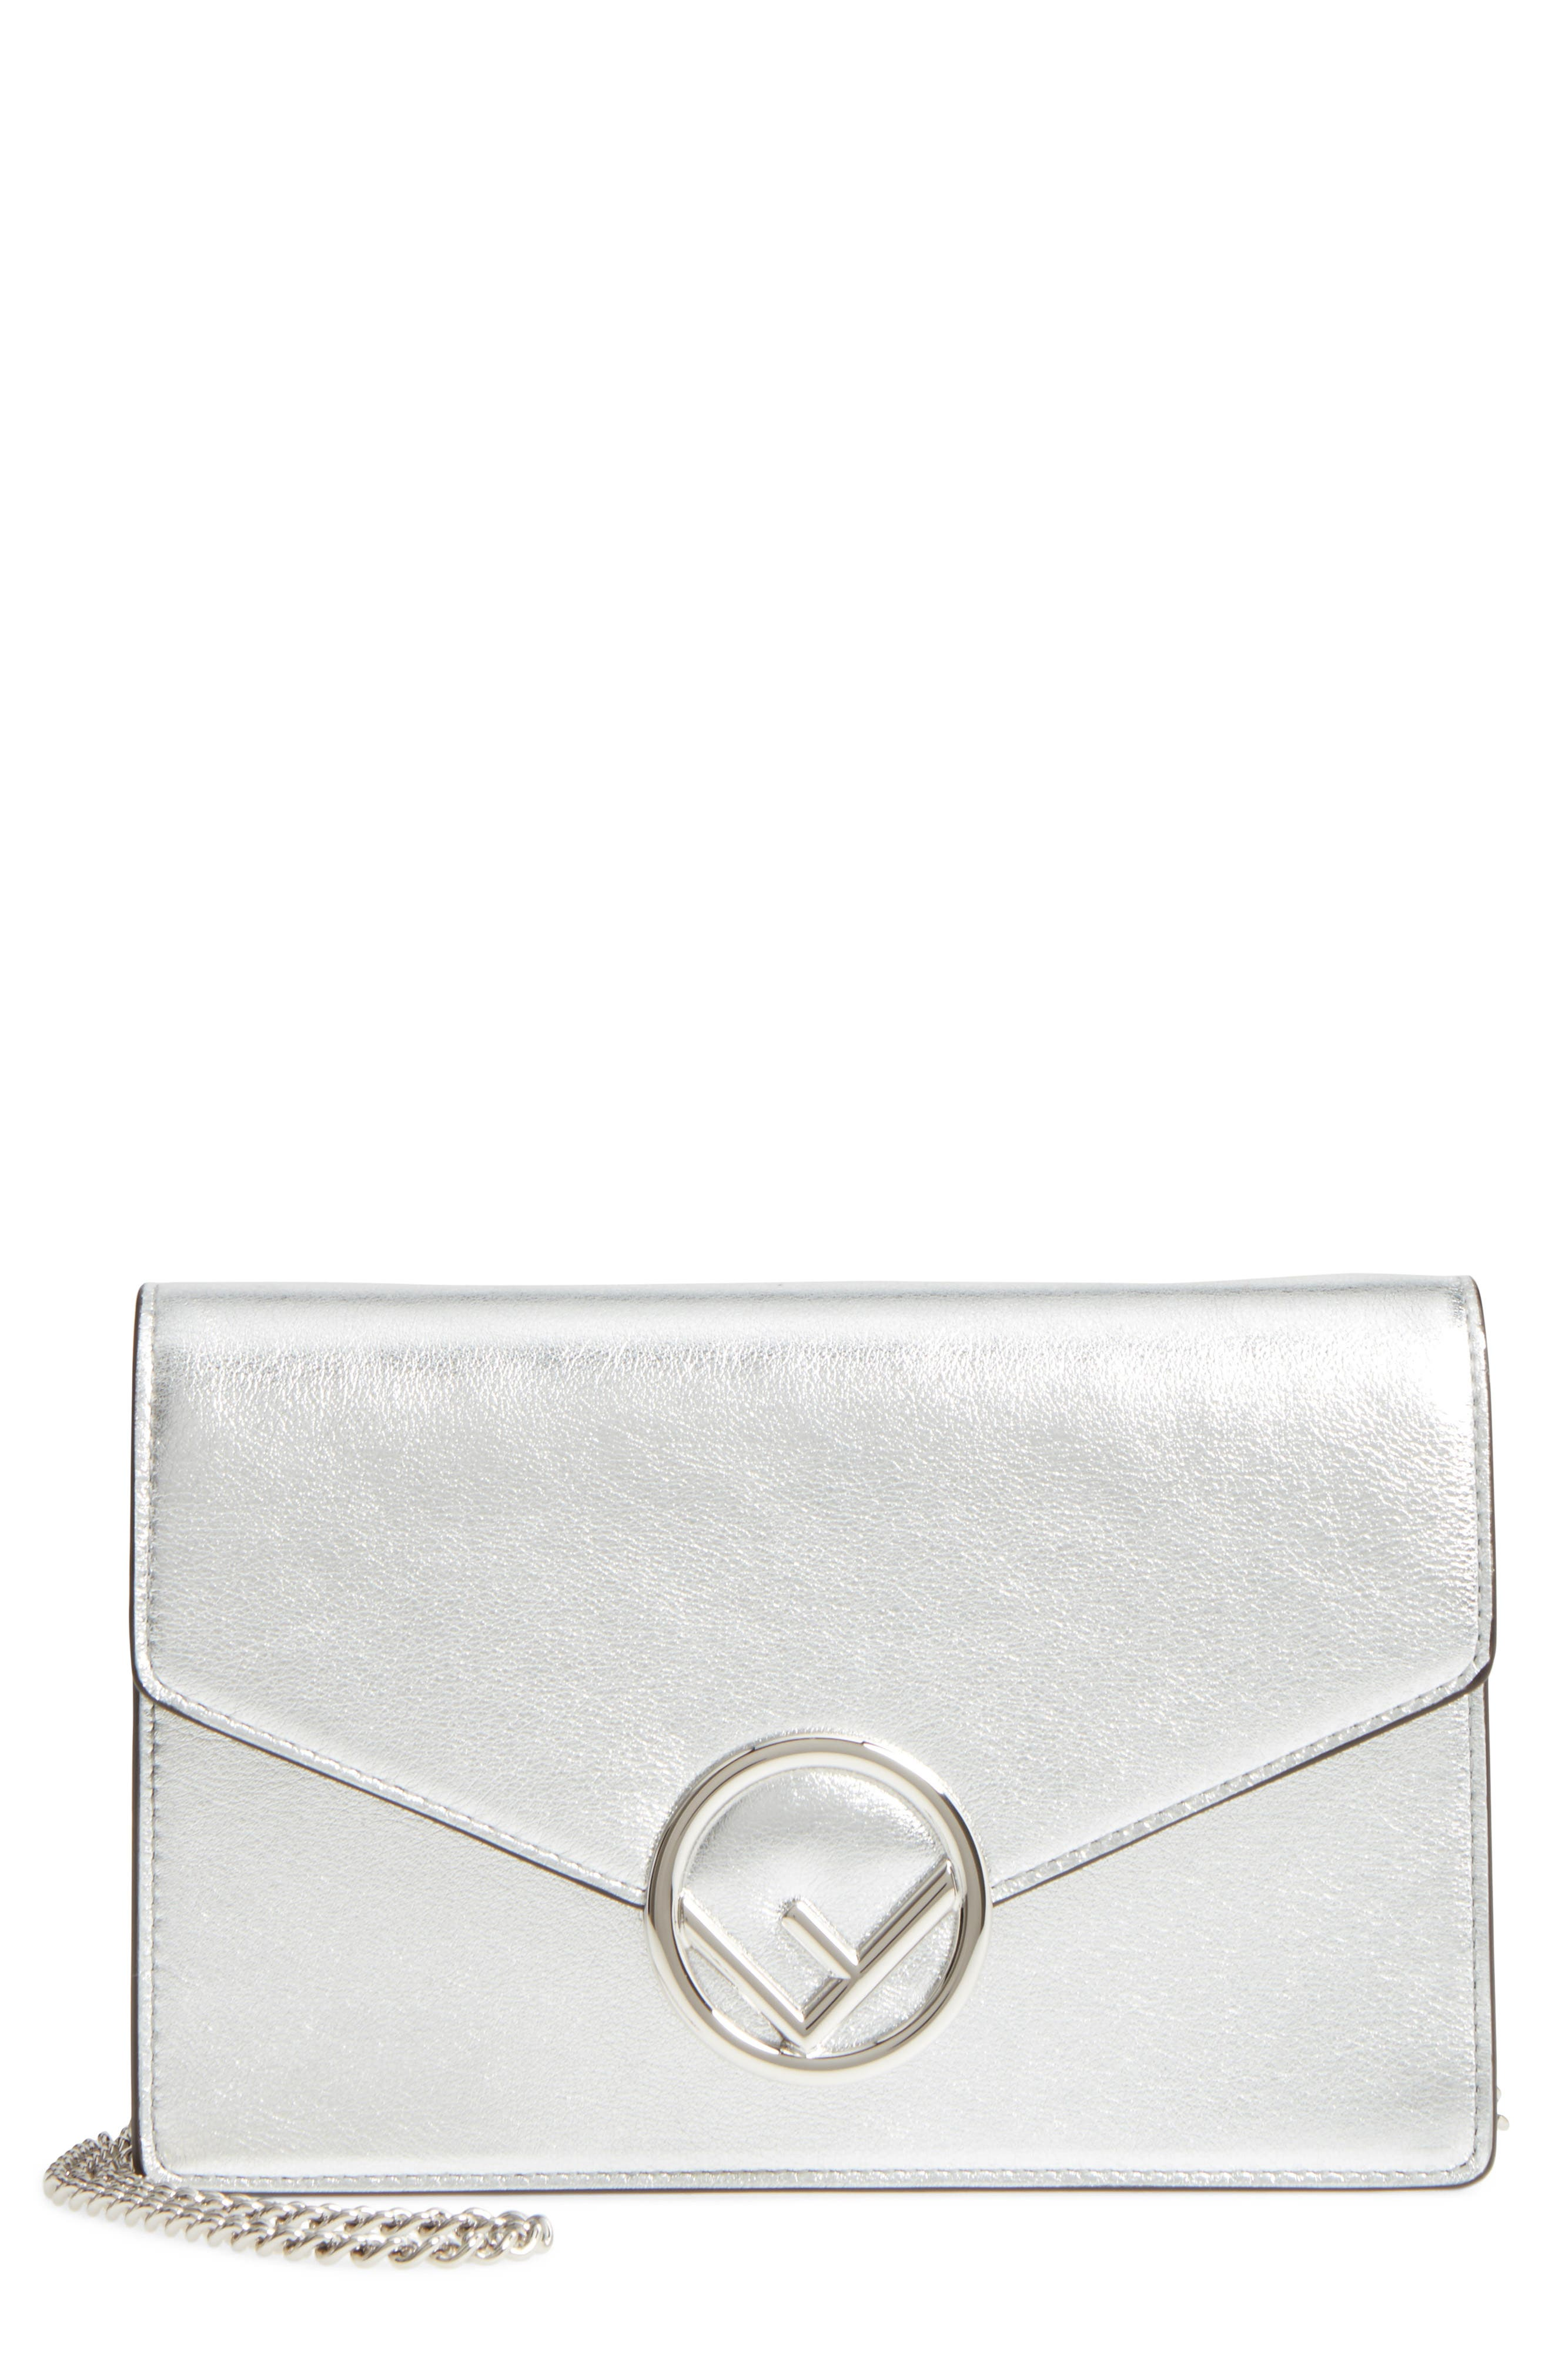 Liberty Logo Calfskin Leather Wallet on a Chain,                             Main thumbnail 1, color,                             SILVER/ PALLADIO